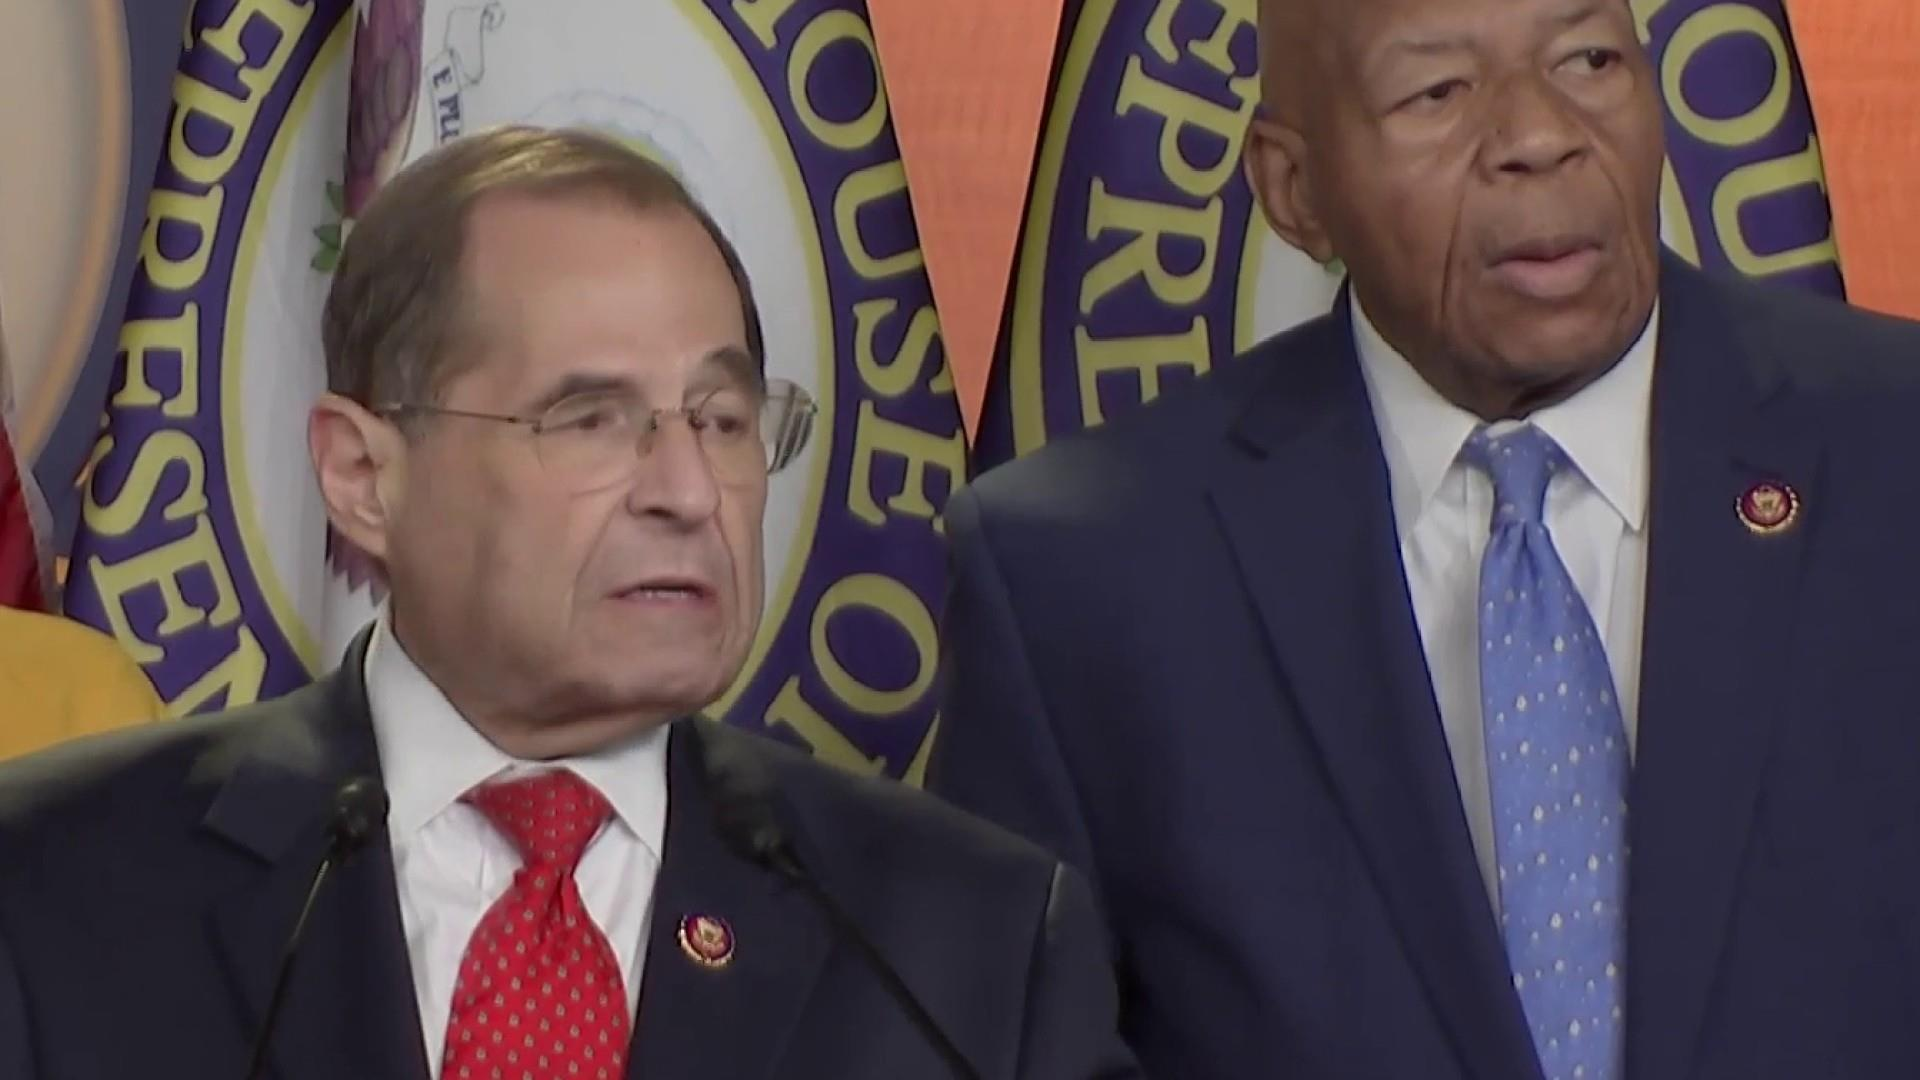 Nadler: 'Mueller made clear that the president is not exonerated'